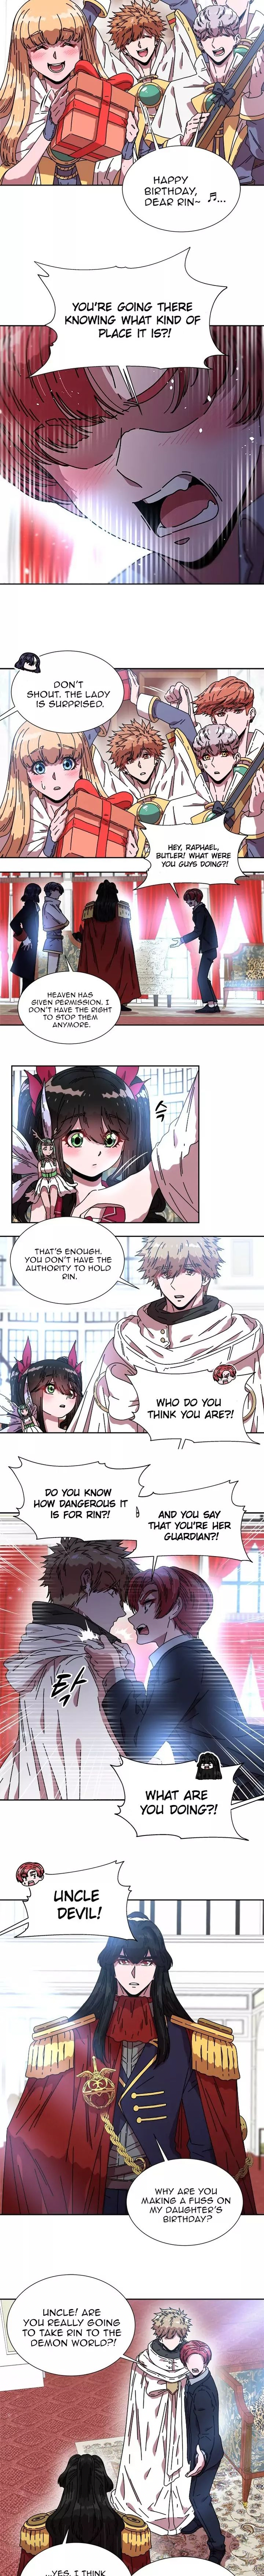 i_was_born_as_the_demon_lords_daughter_34_2